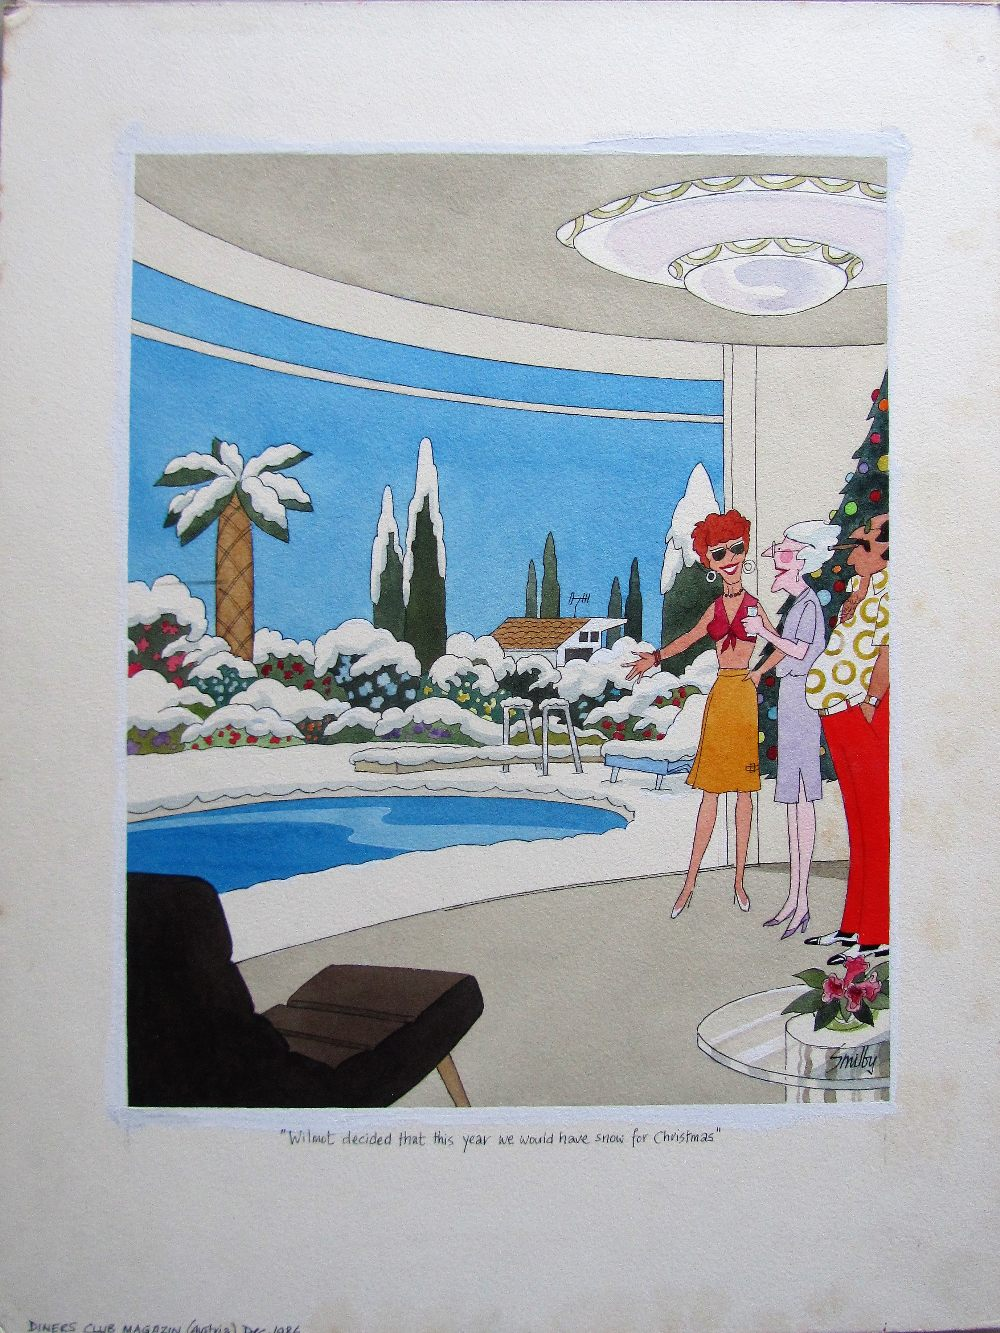 Lot 46 - Smilby, Francis Wilford-Smith 'Wilmot decided that this year we would have snow for Christmas'